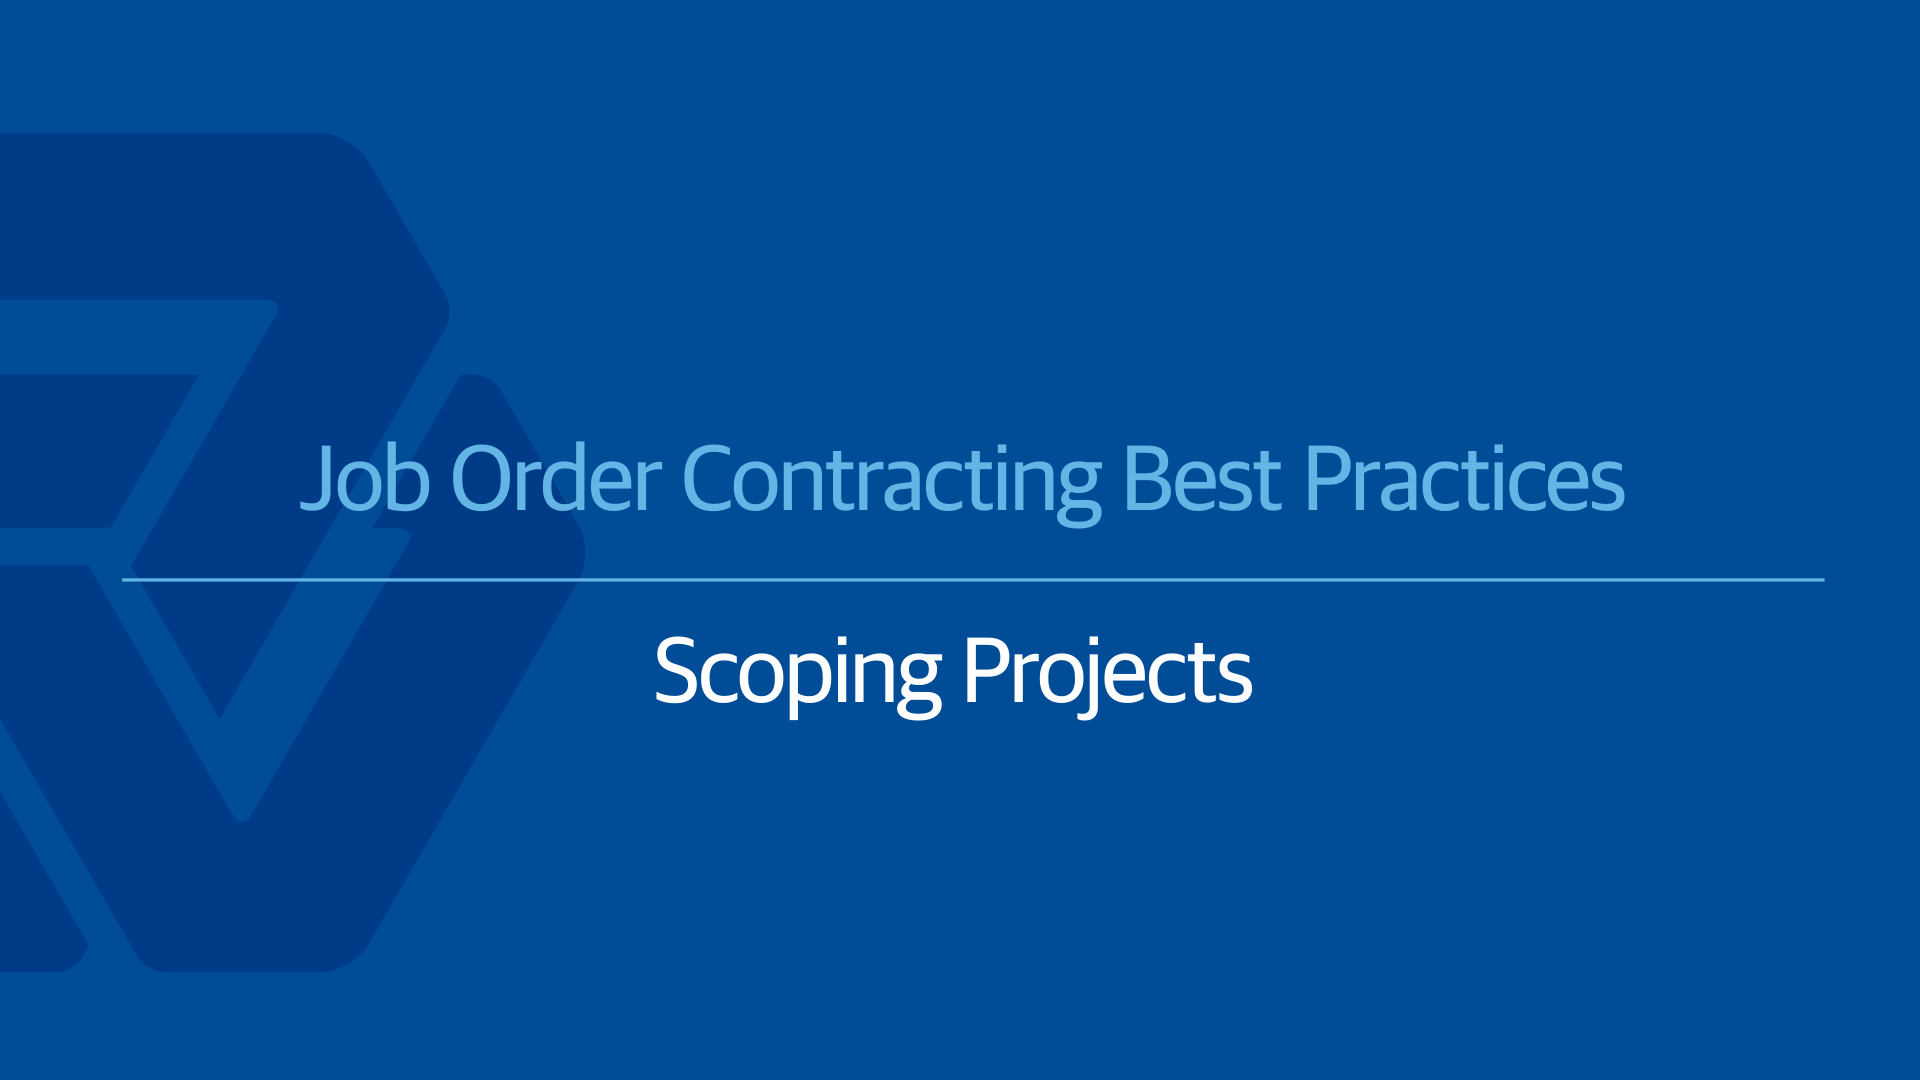 Job Order Contracting Best Practices:Creating a Detailed Scope of Work